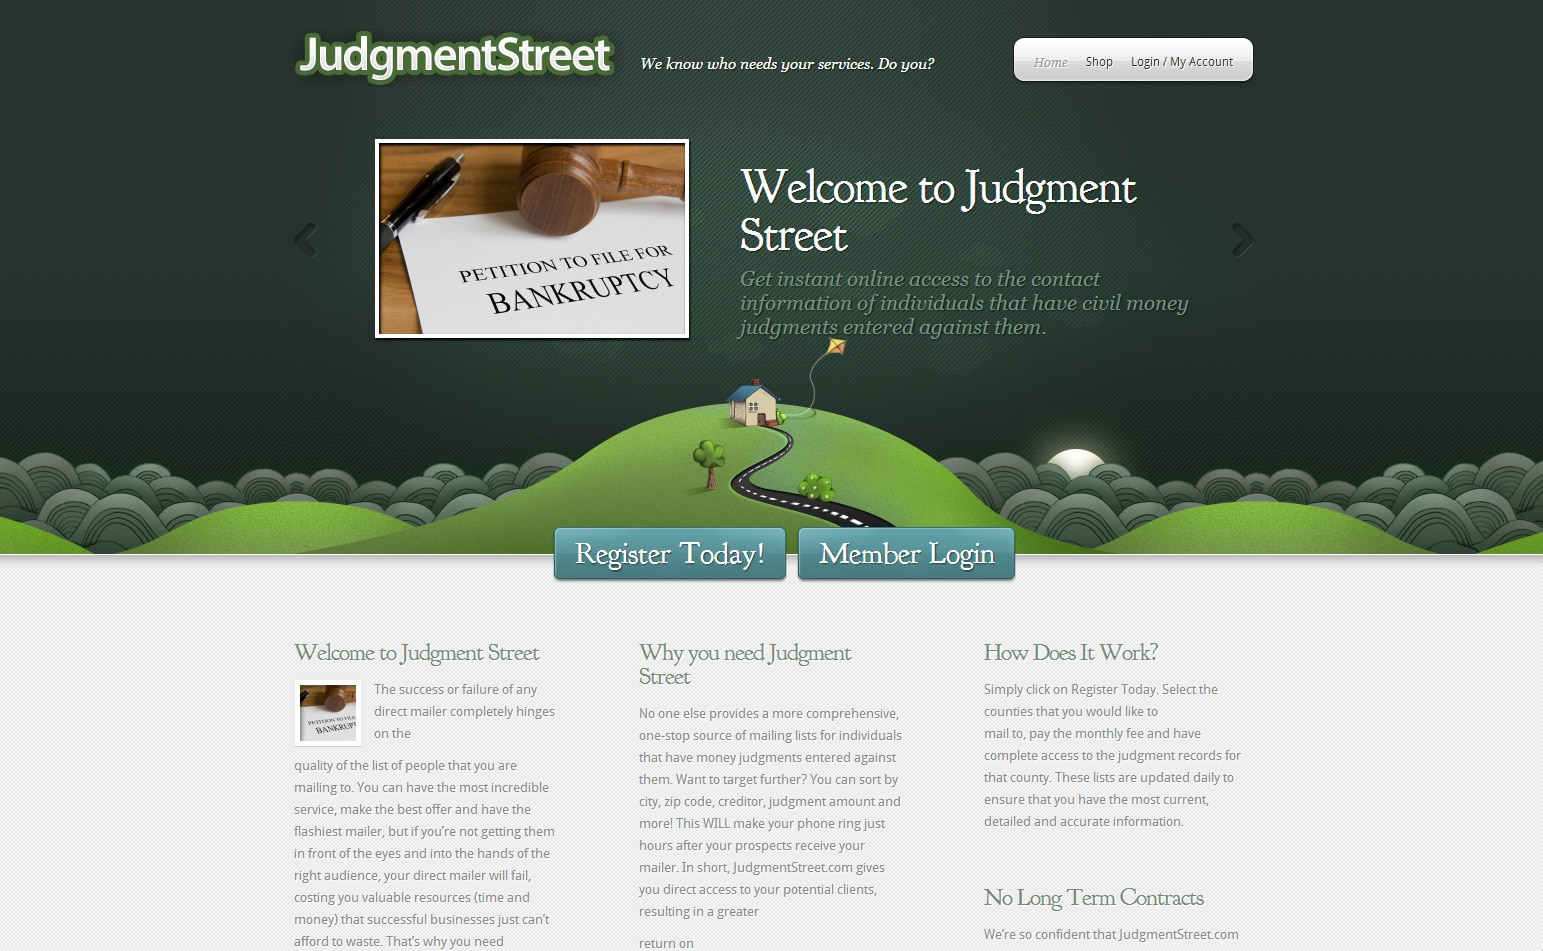 judgmentstreet